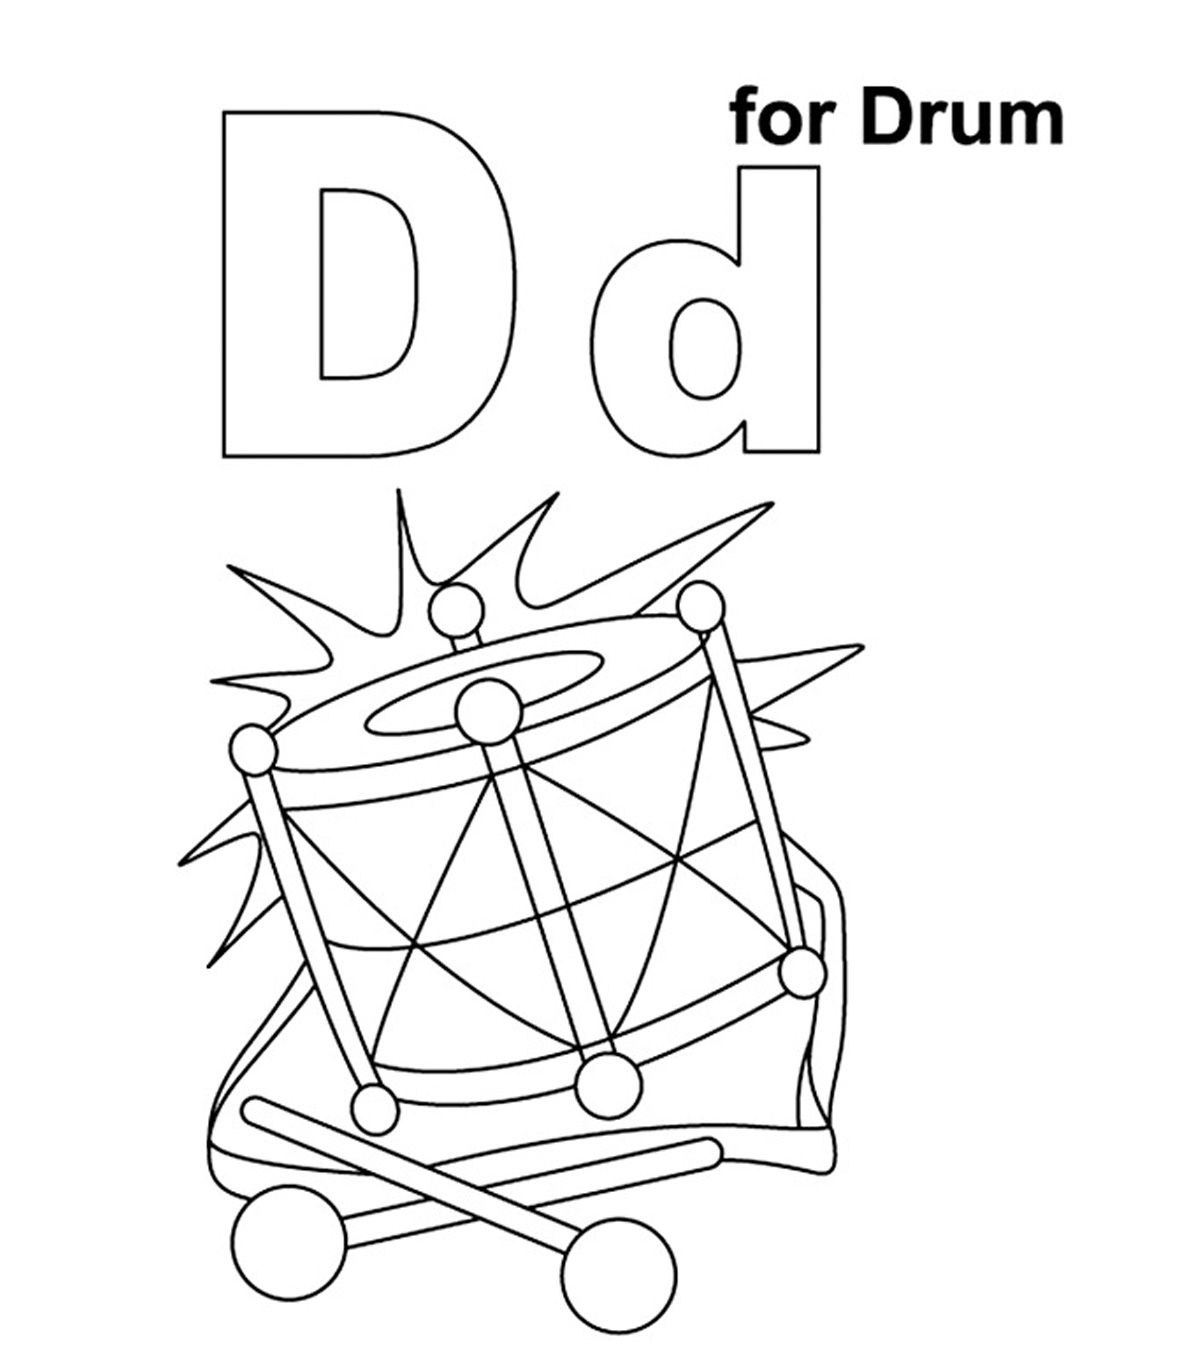 Drums Coloring Pages Best Coloring Pages For Kids Coloring Pages For Kids Coloring Pages Drums